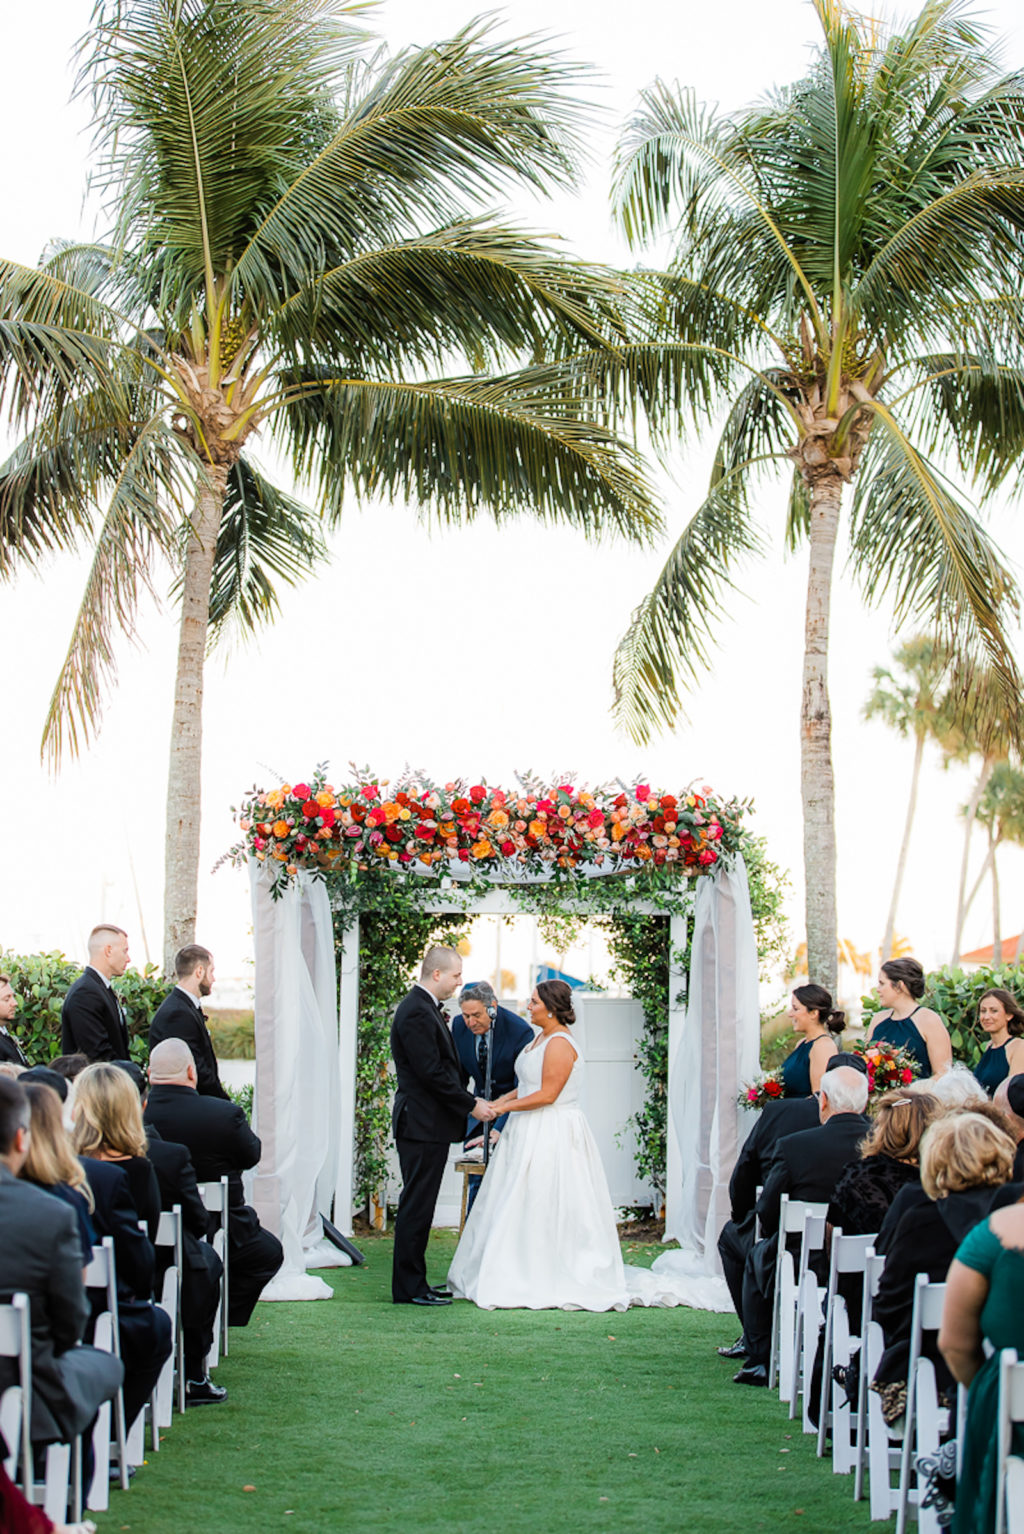 Elegant Waterfront Outdoor Garden Wedding Ceremony Decor, Bride and Groom Exchanging Wedding Vows, White Folding Chairs, Tall Wooden Aisle Pedestals with Jewel Tone Floral Arrangements, Arch with White Linens and Flowers | Tampa Bay Wedding Venue The Resort at Longboat Key Club